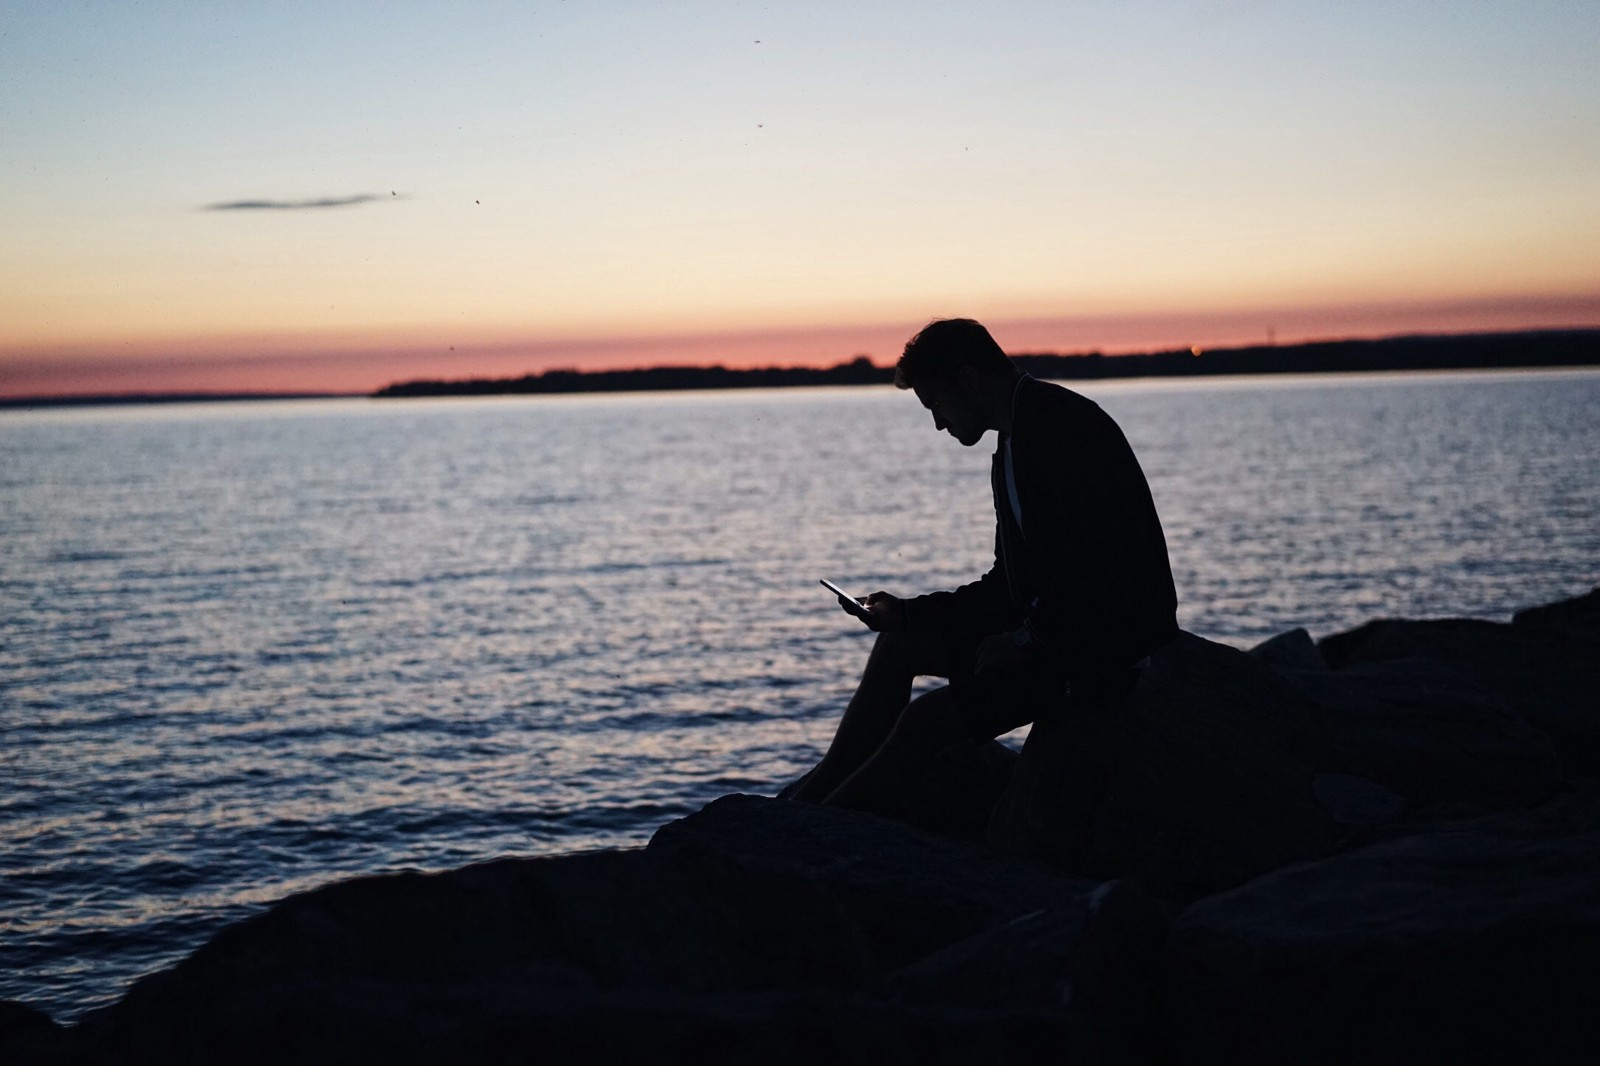 A lone figure in silhouette sits next to a large expanse of water at sunset, looking at his phone. Photo credit: Steven Spassov via Unsplash